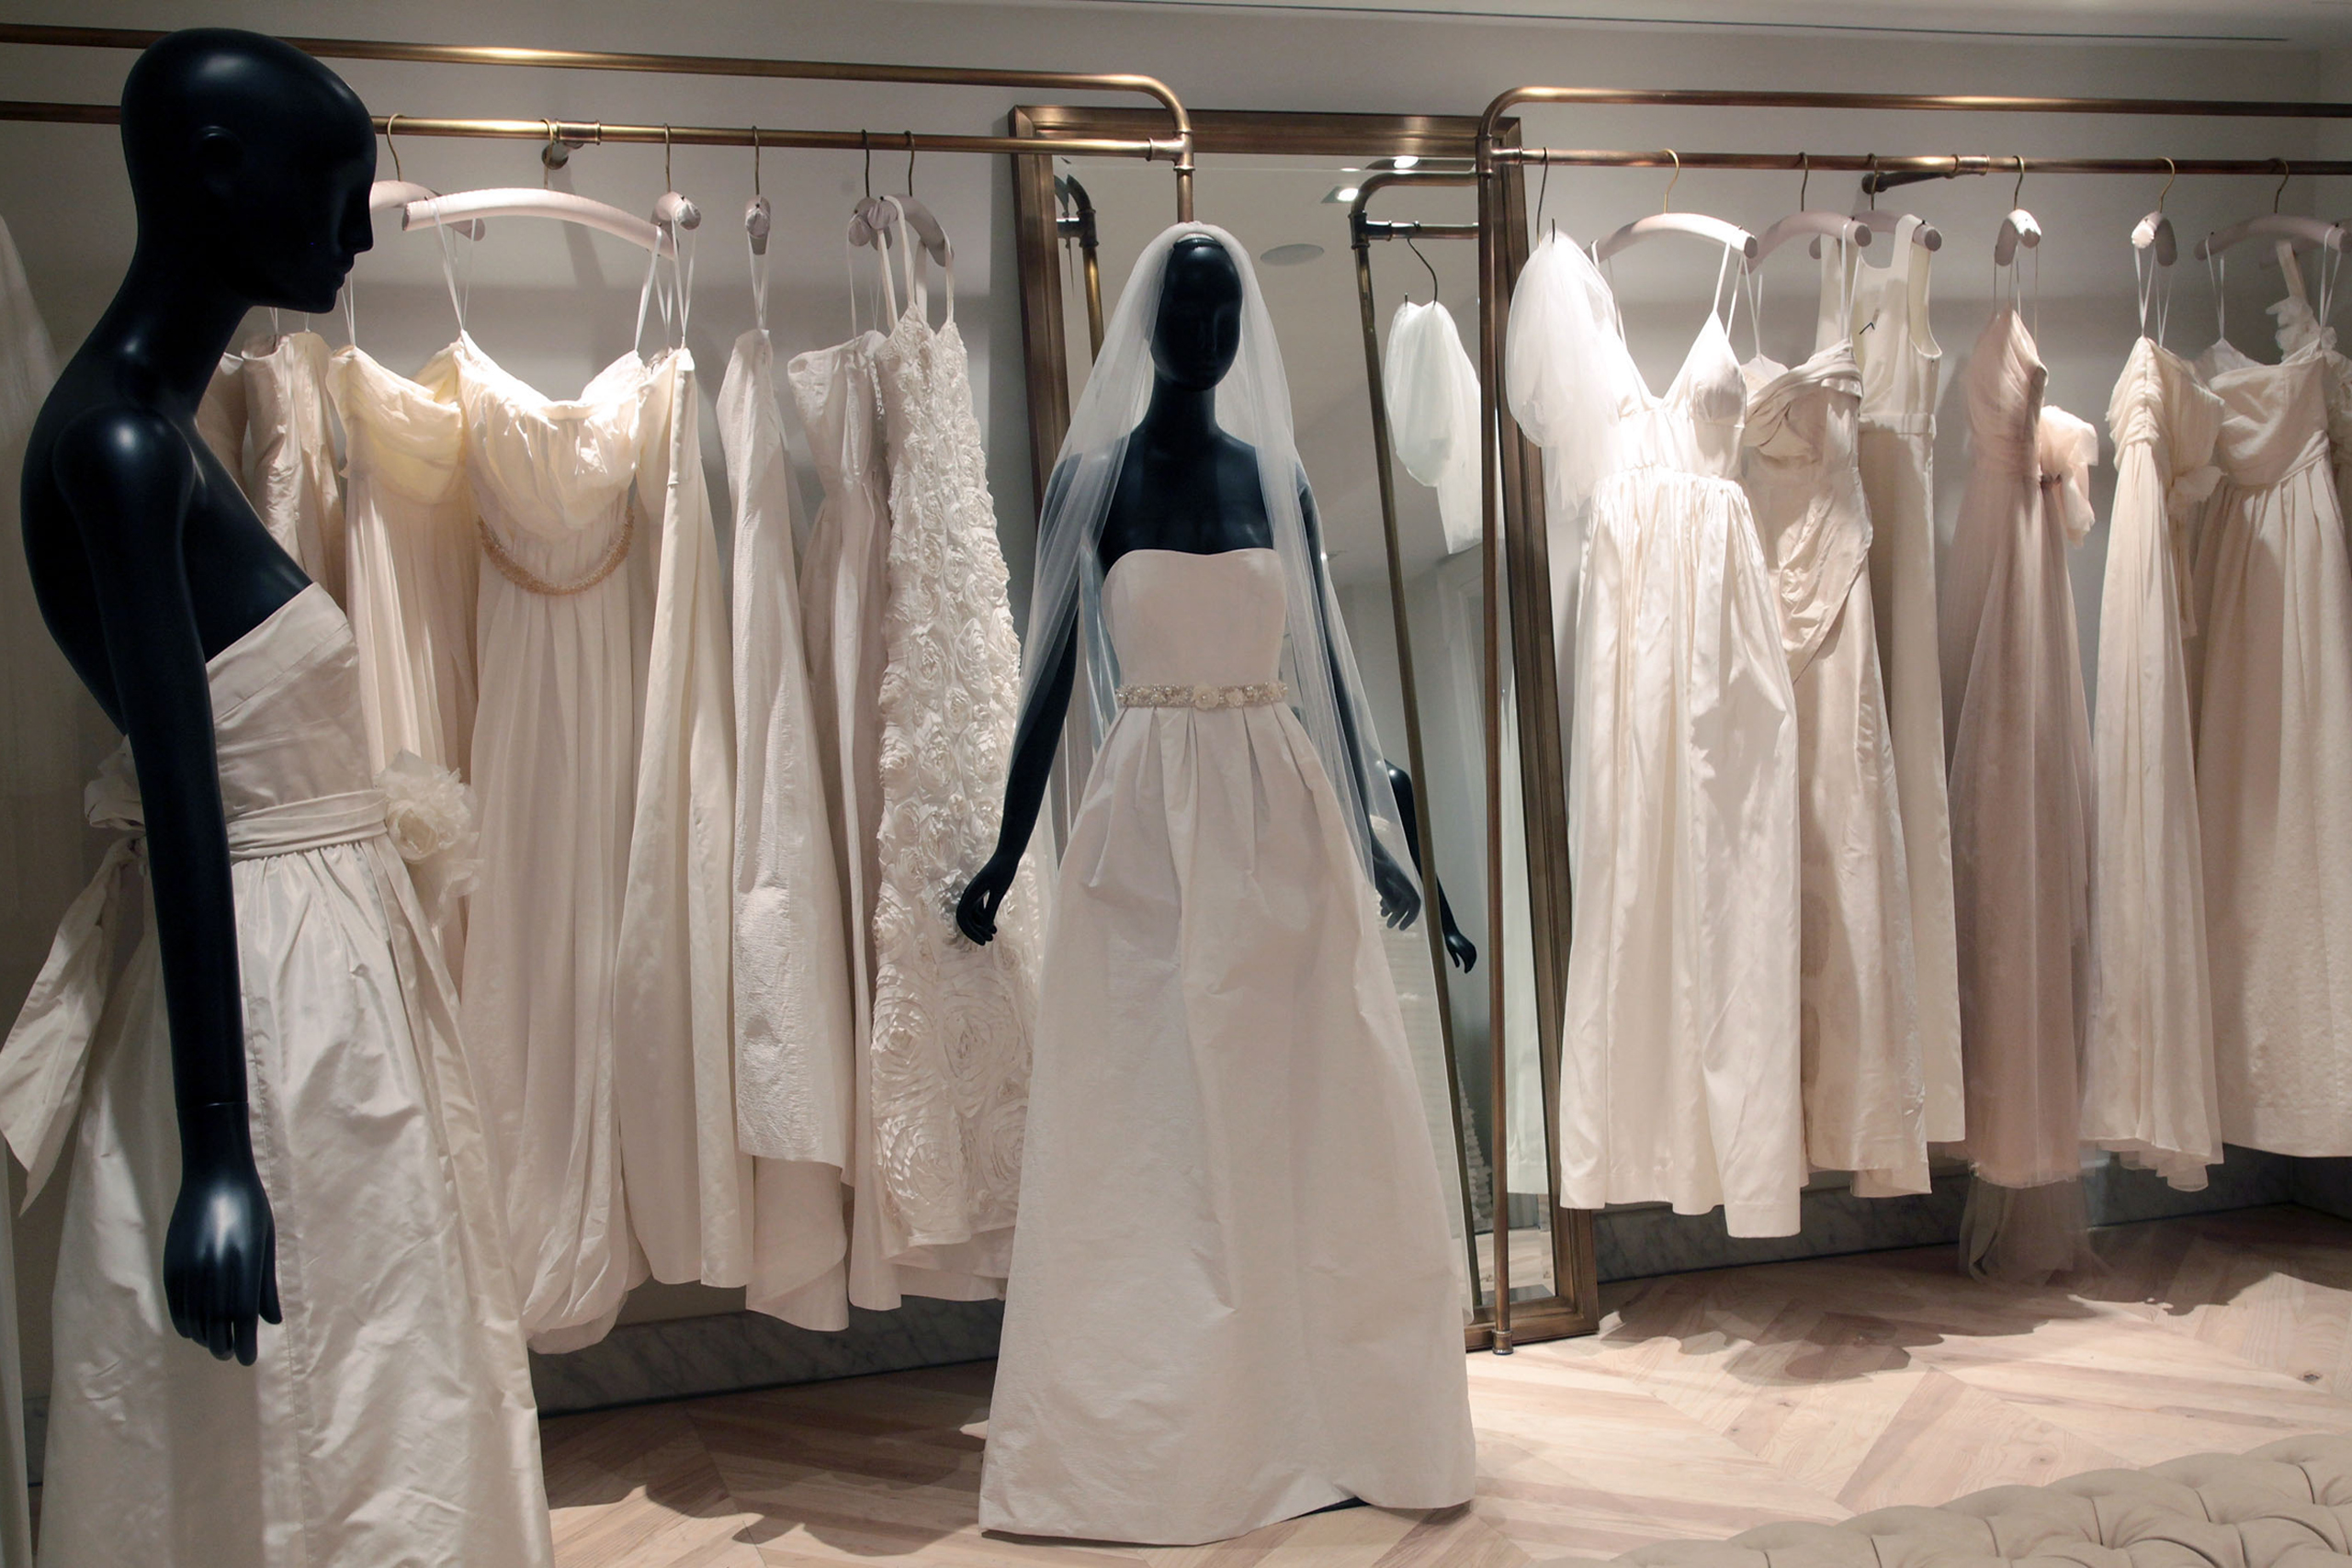 The opening of the J.Crew Bridal Boutique hosted by Darcy Miller is held at  J.Crew Bridal Boutique in New York City, on June 1, 2010.